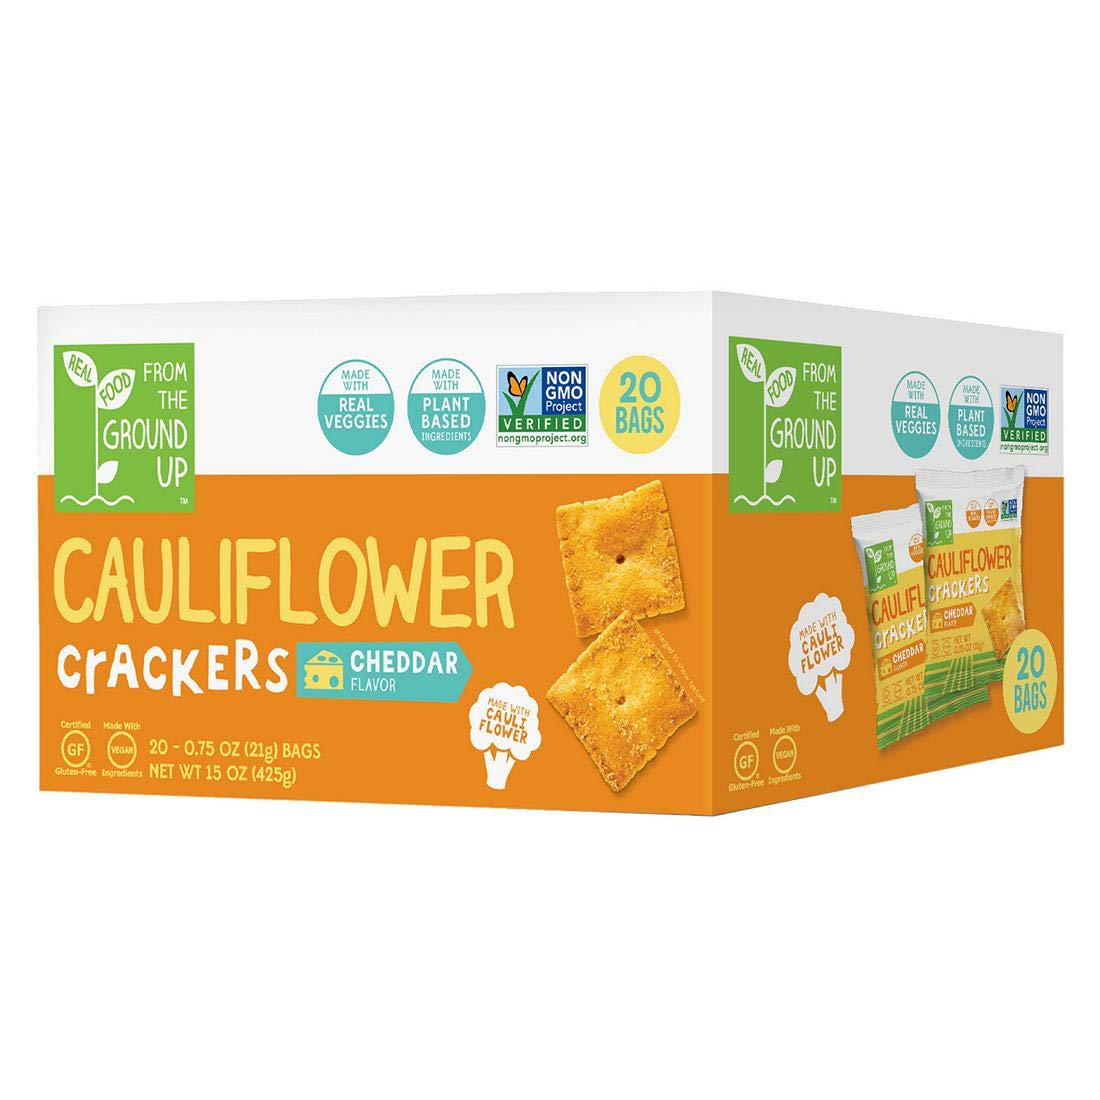 From The Ground Up Cauliflower Crackers 20 Packs of .75oz